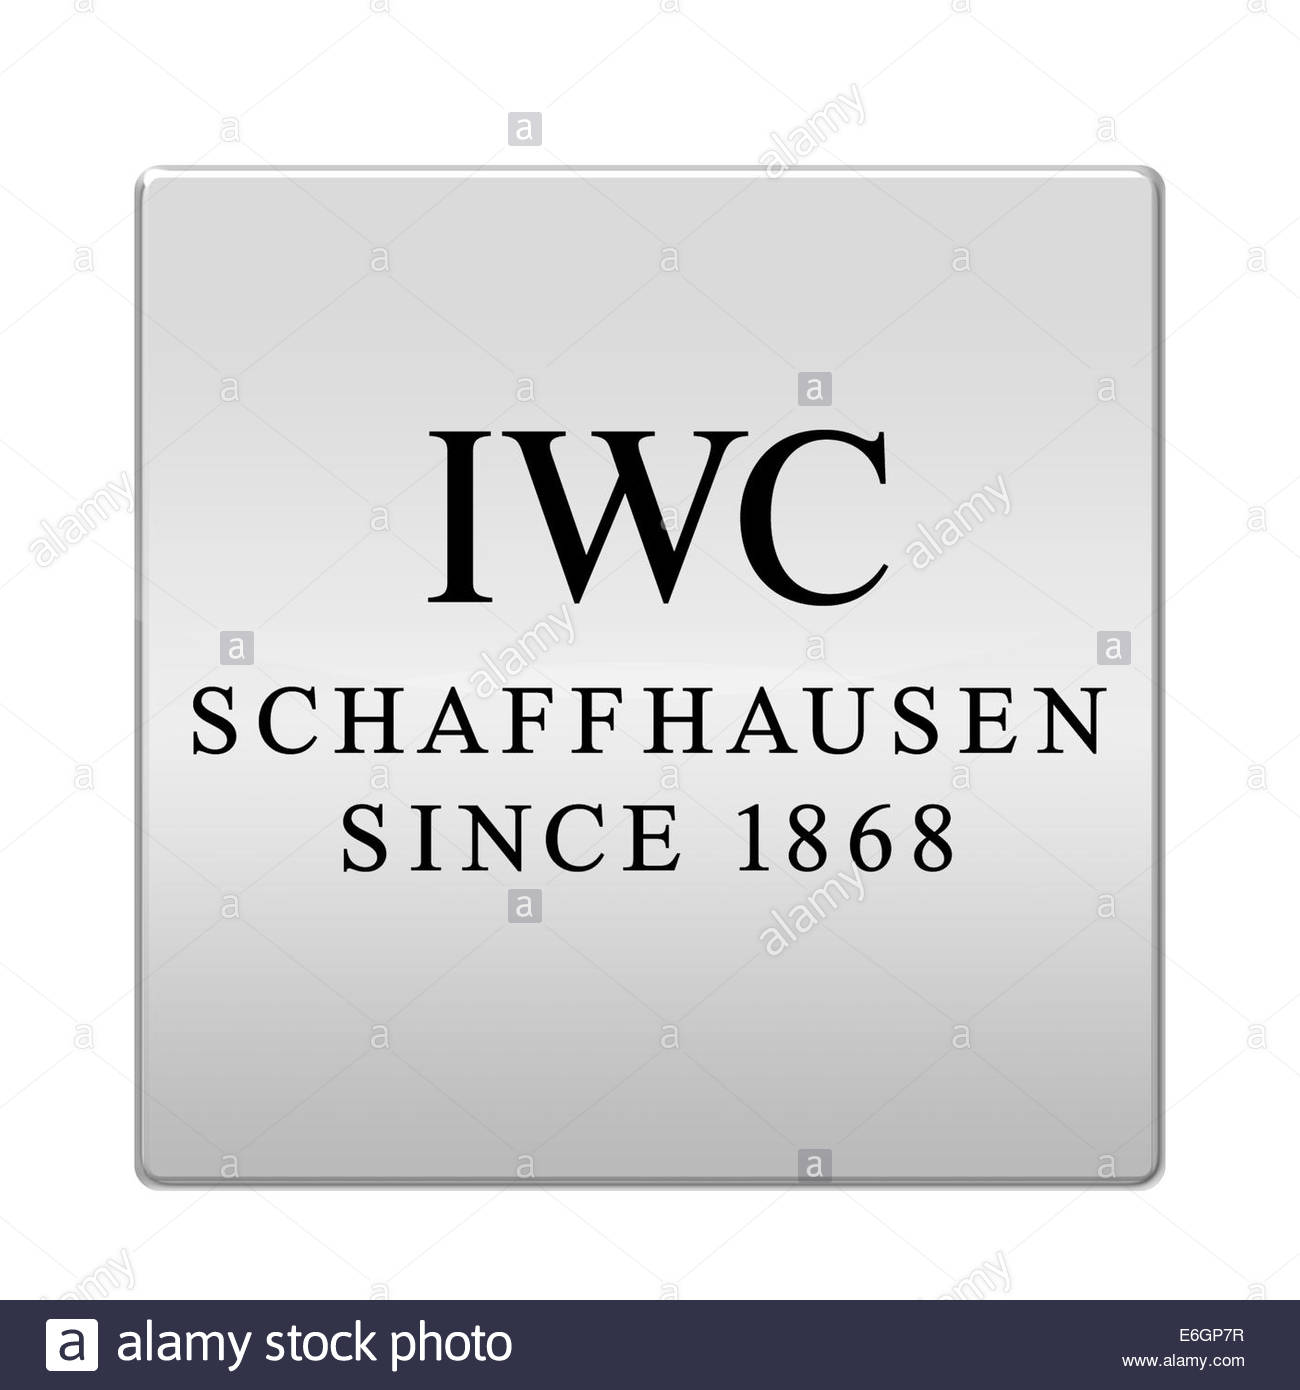 International Watch Company IWC Logo Symbolschaltfläche isolierte app Stockbild